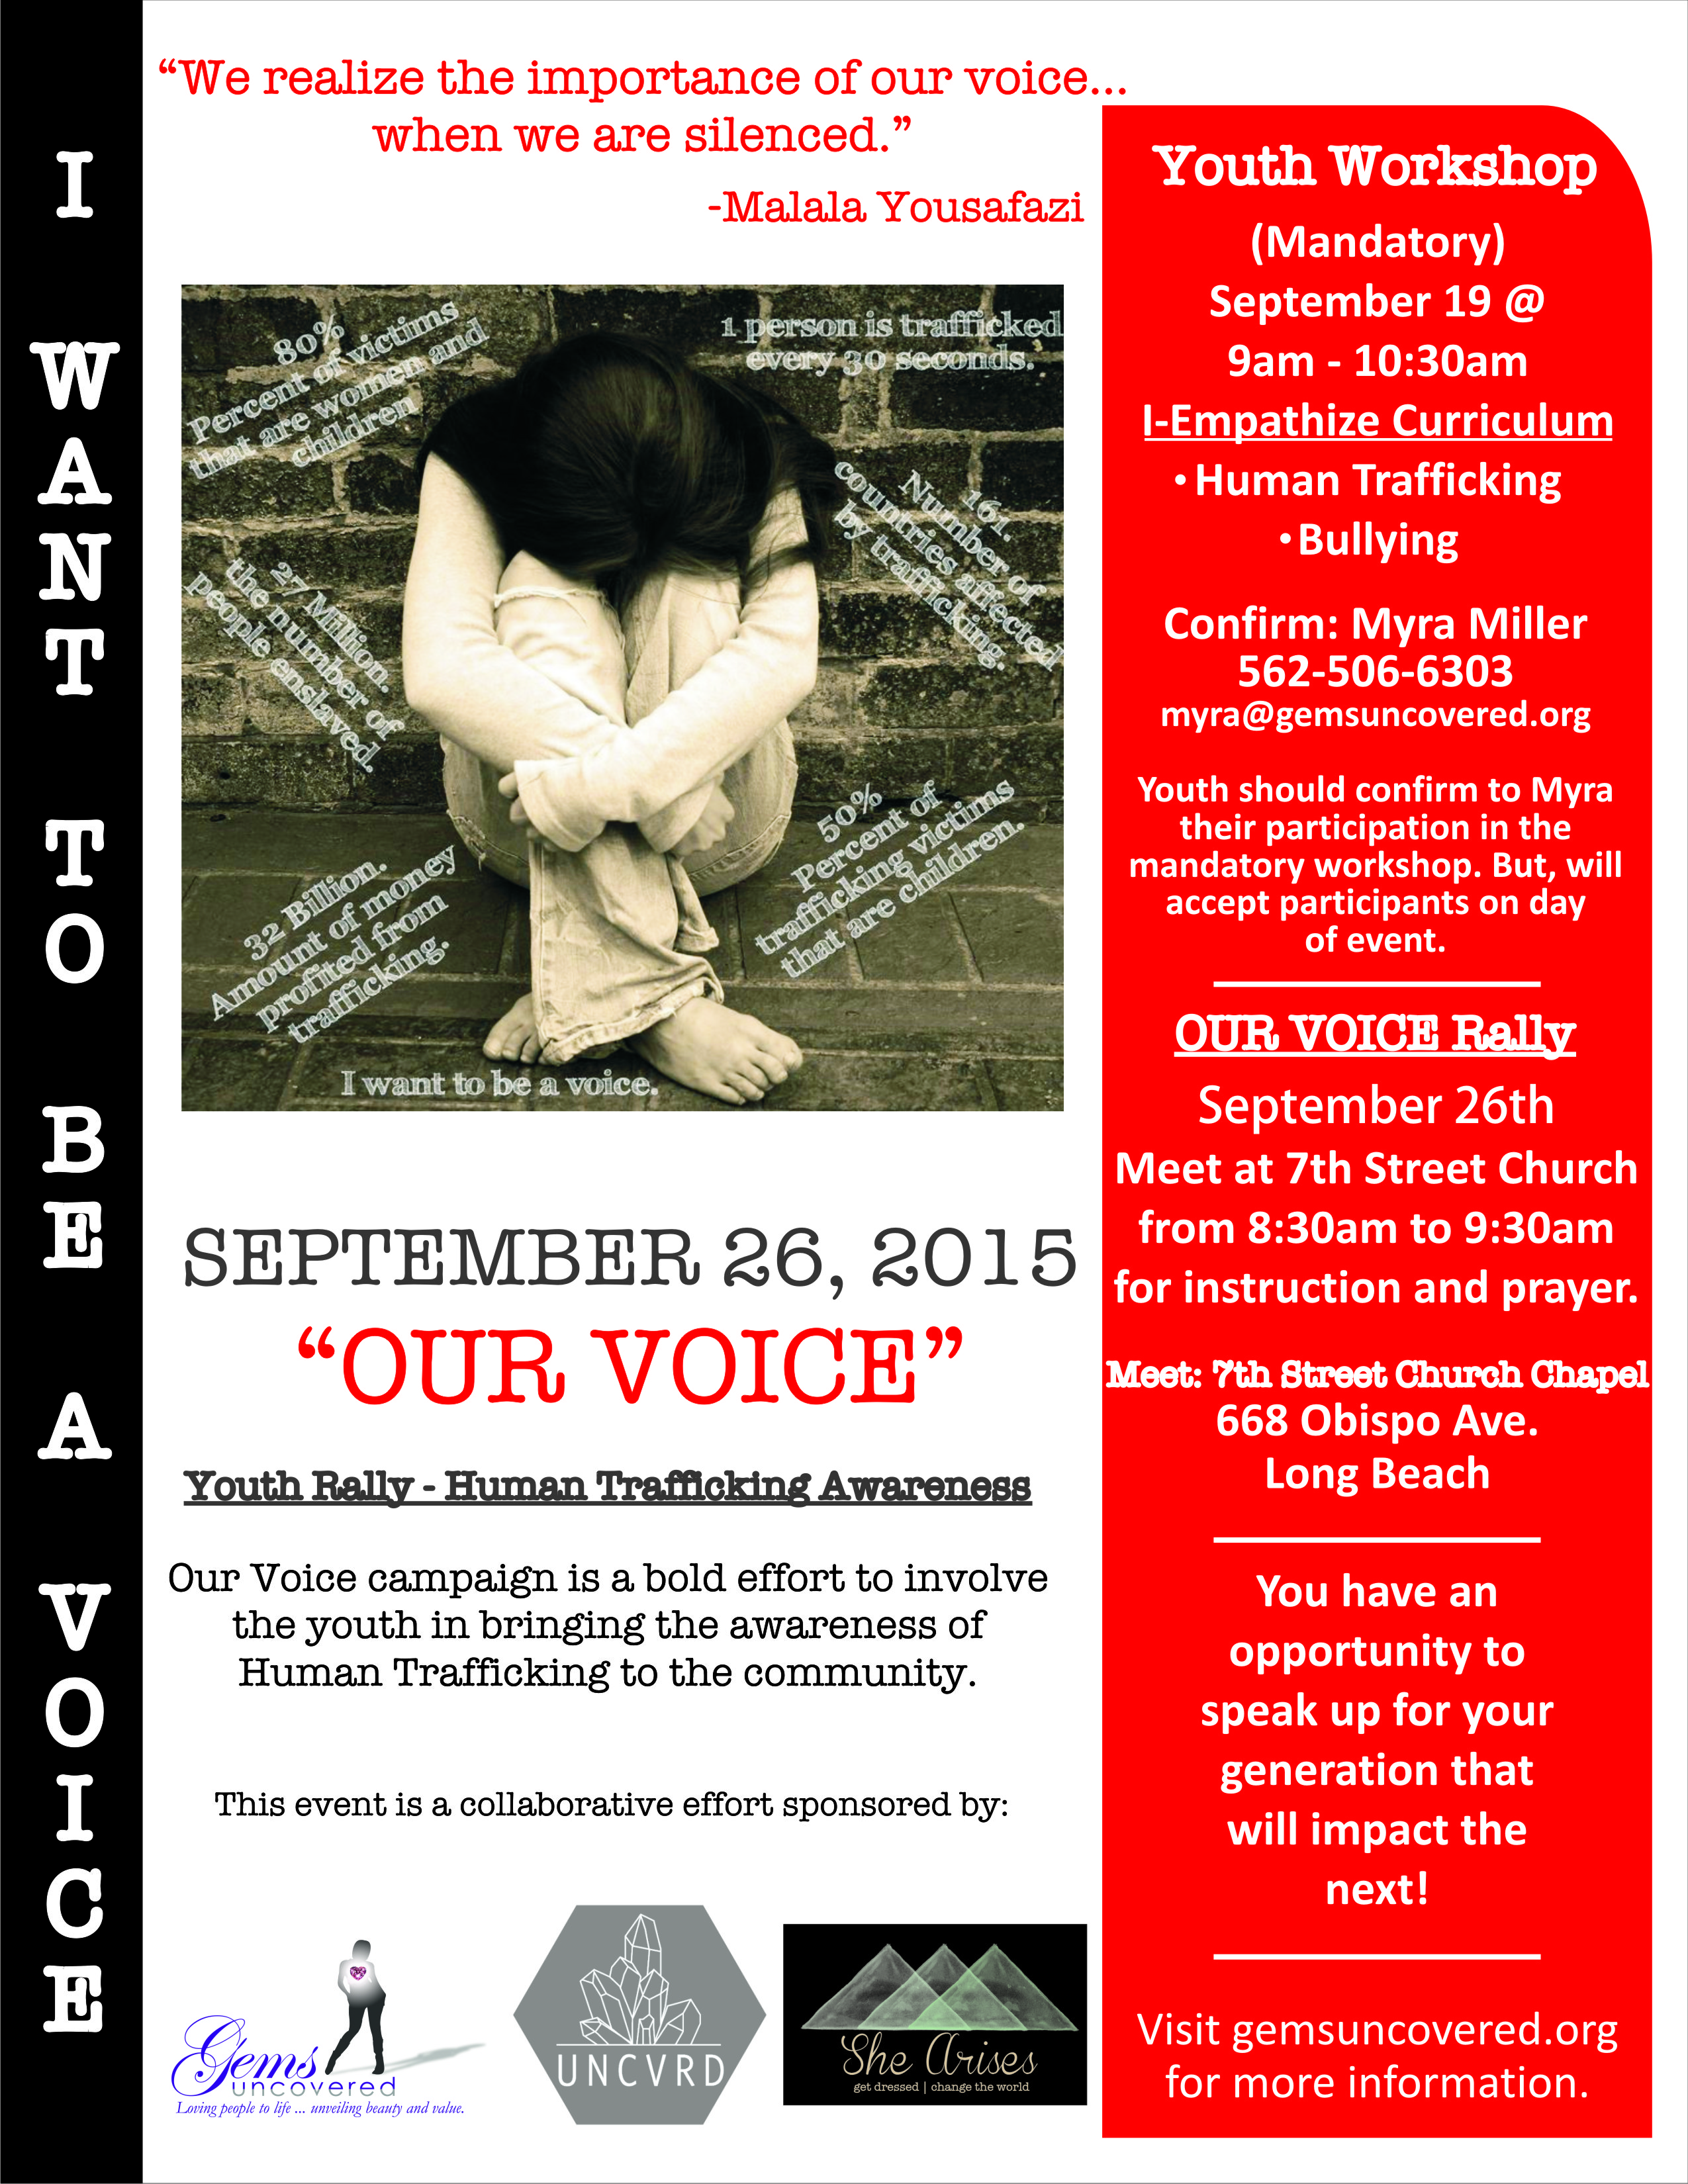 Our Voice Campaign - September 26